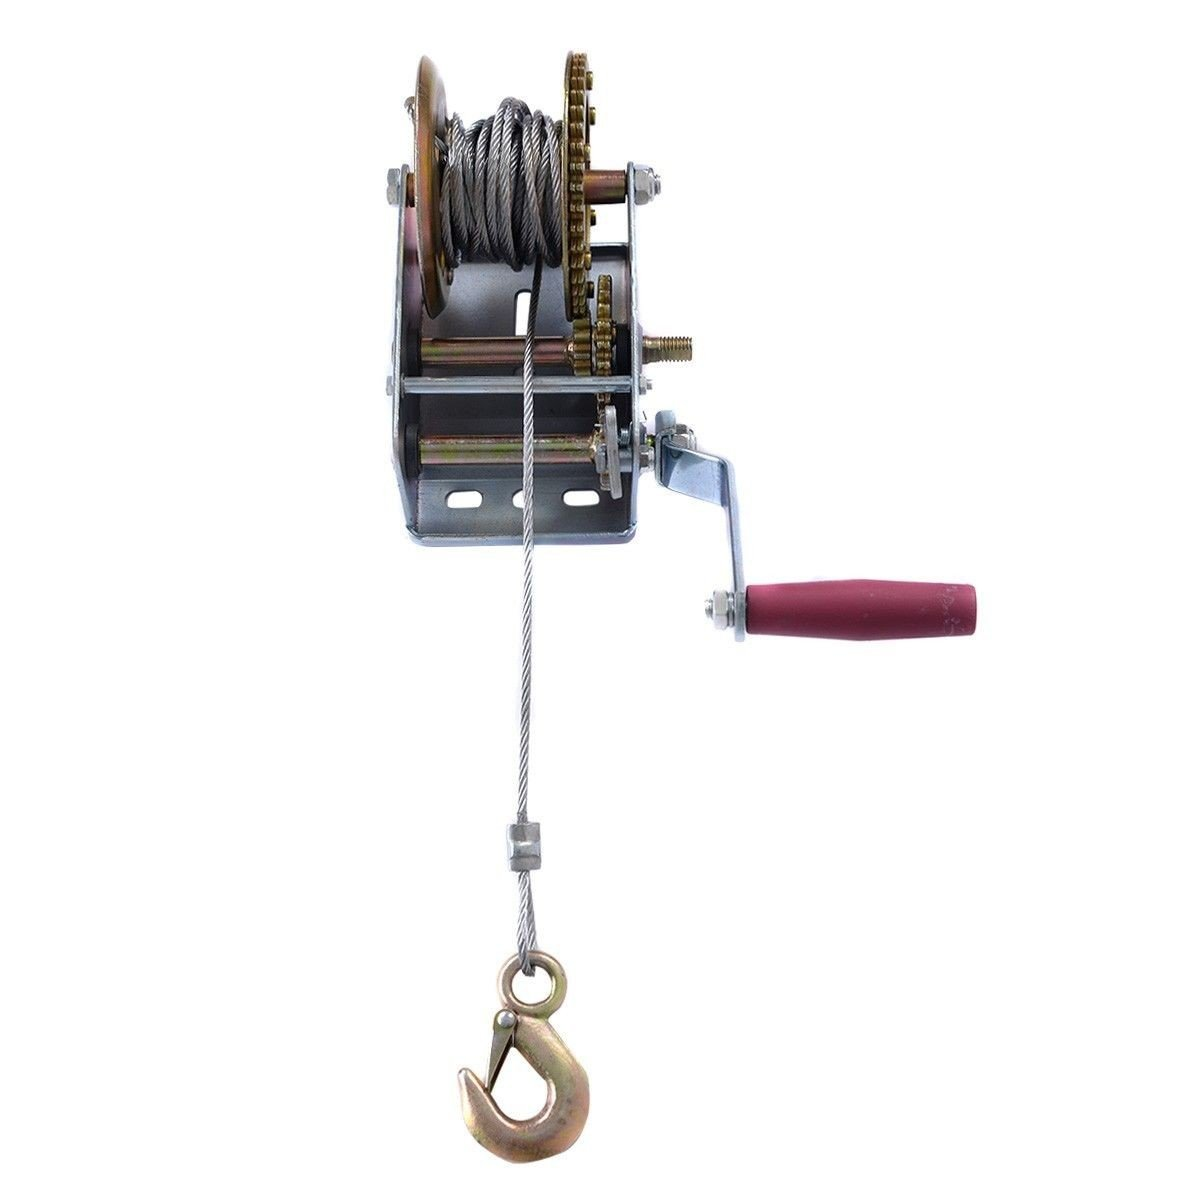 New 2000lb 1 Ton Hand Crank Steel Gear Cable Wire Winch Boat Atv How To A Trailer W